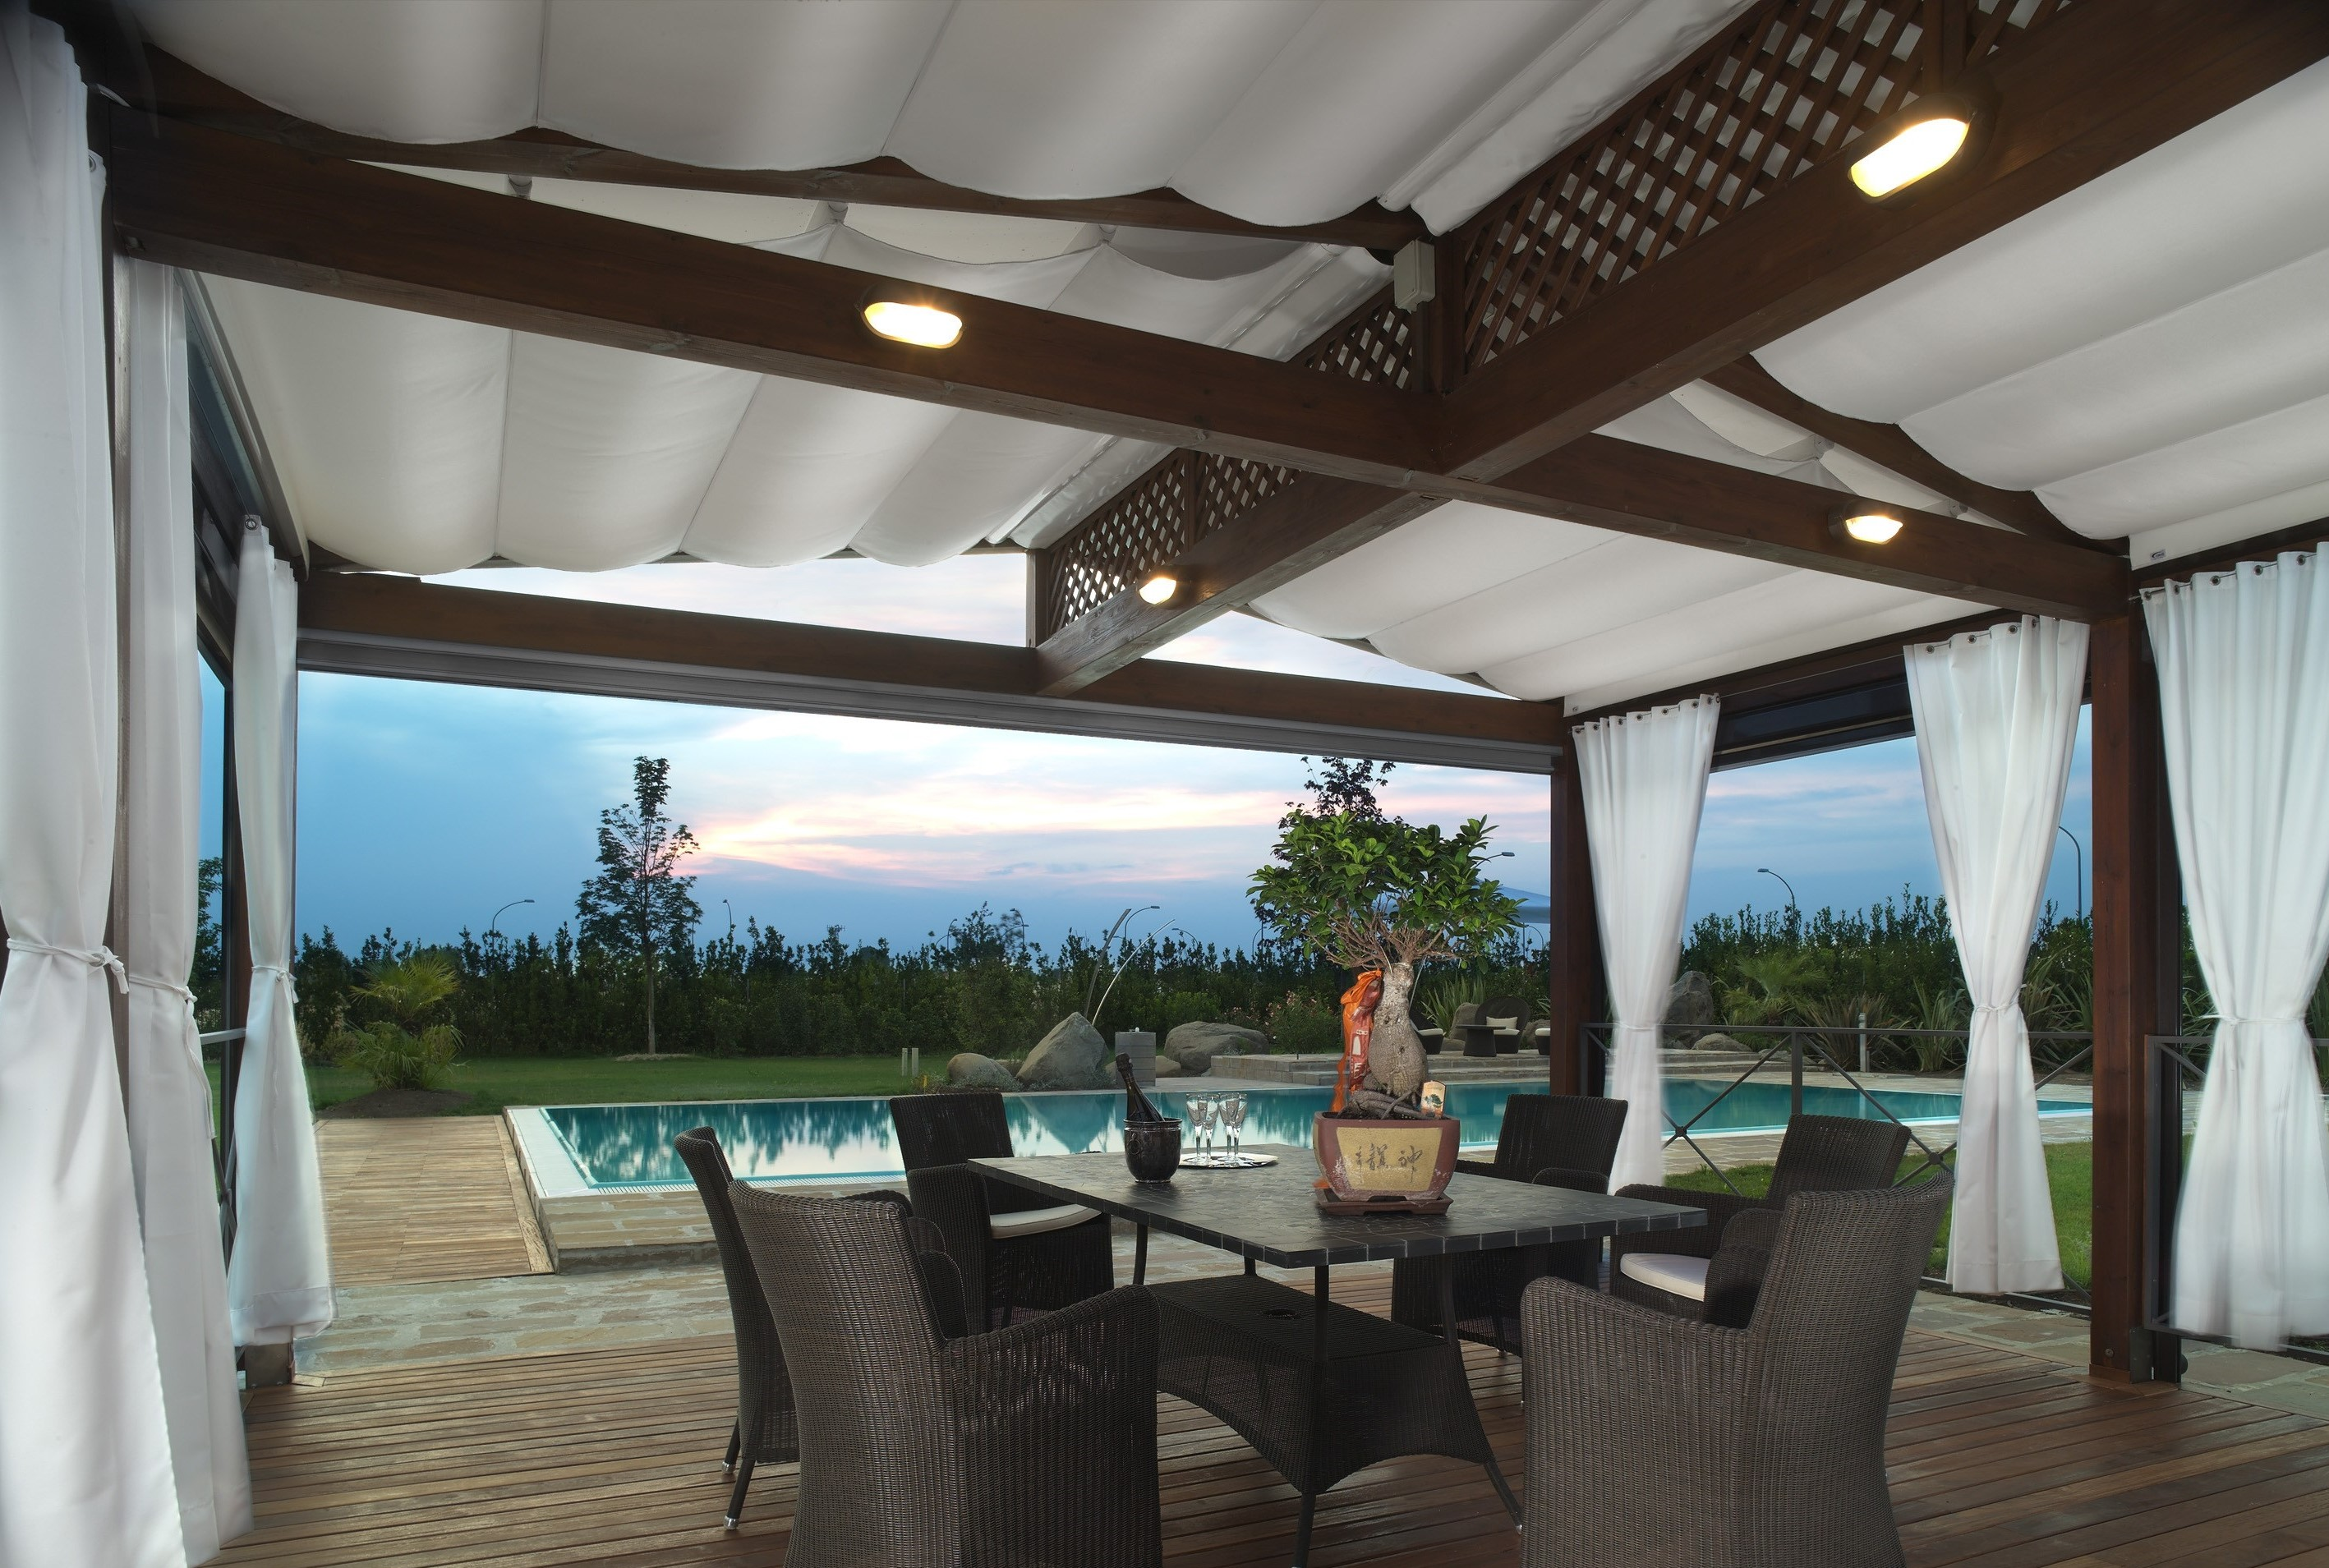 Pergola Fabric Roof Retractable Couture Outdoor